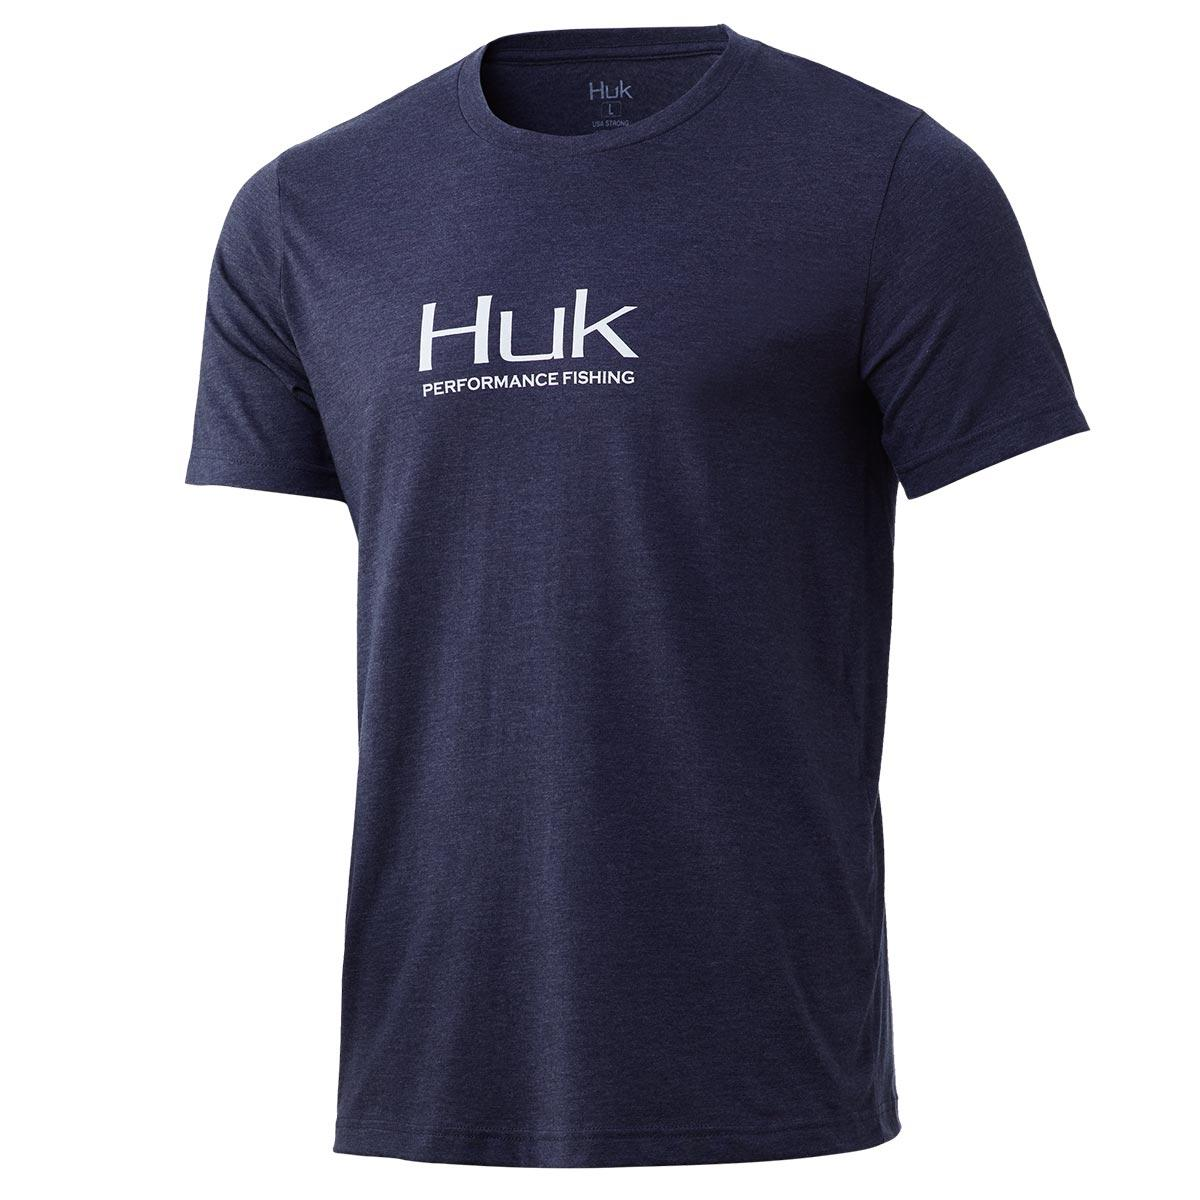 Huk Performance Fishing Tee_Sargasso Sea Heather.jpg